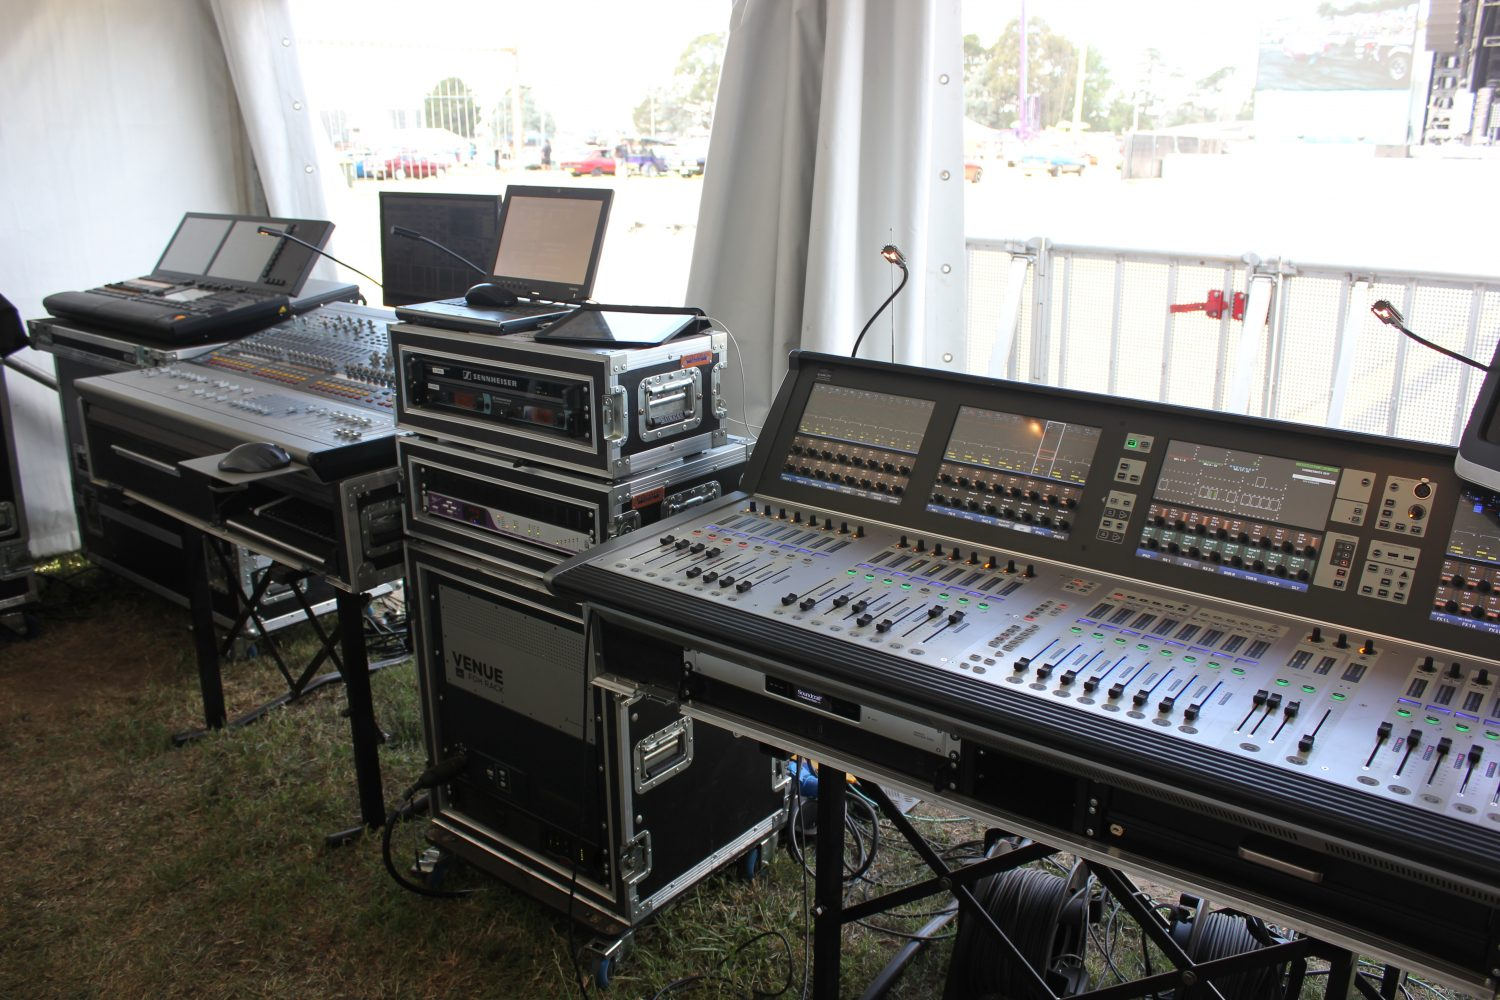 Hire and Production Equipment – Elite Event Technology